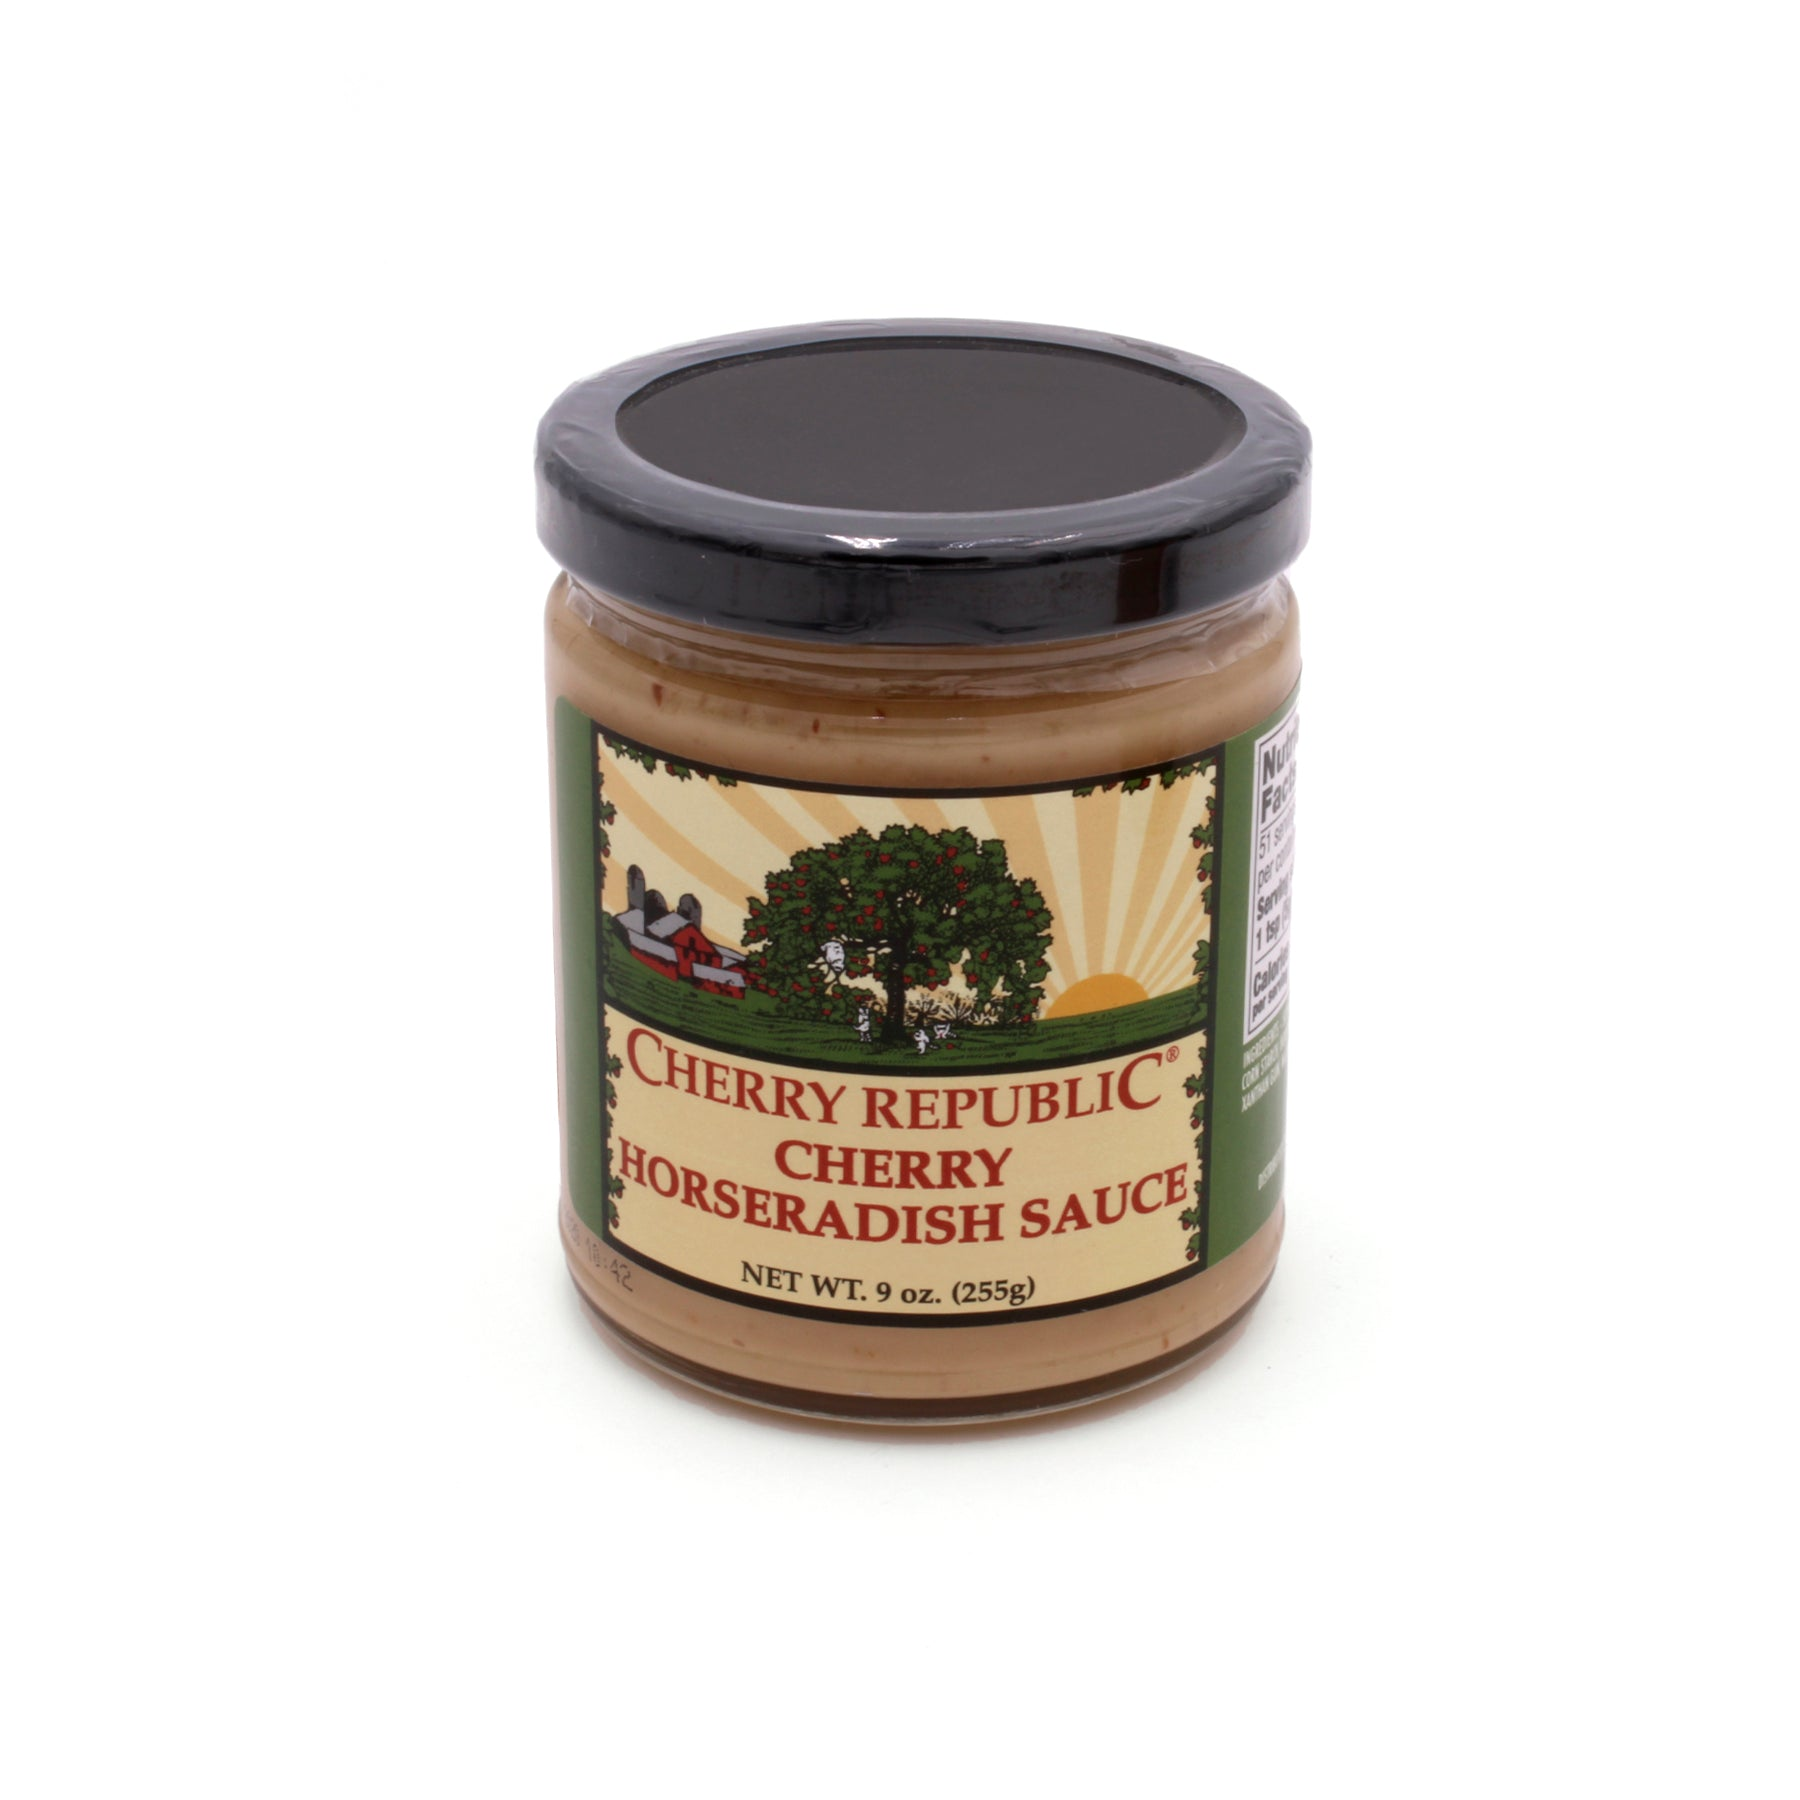 Cherry Republic Cherry Horseradish Sauce